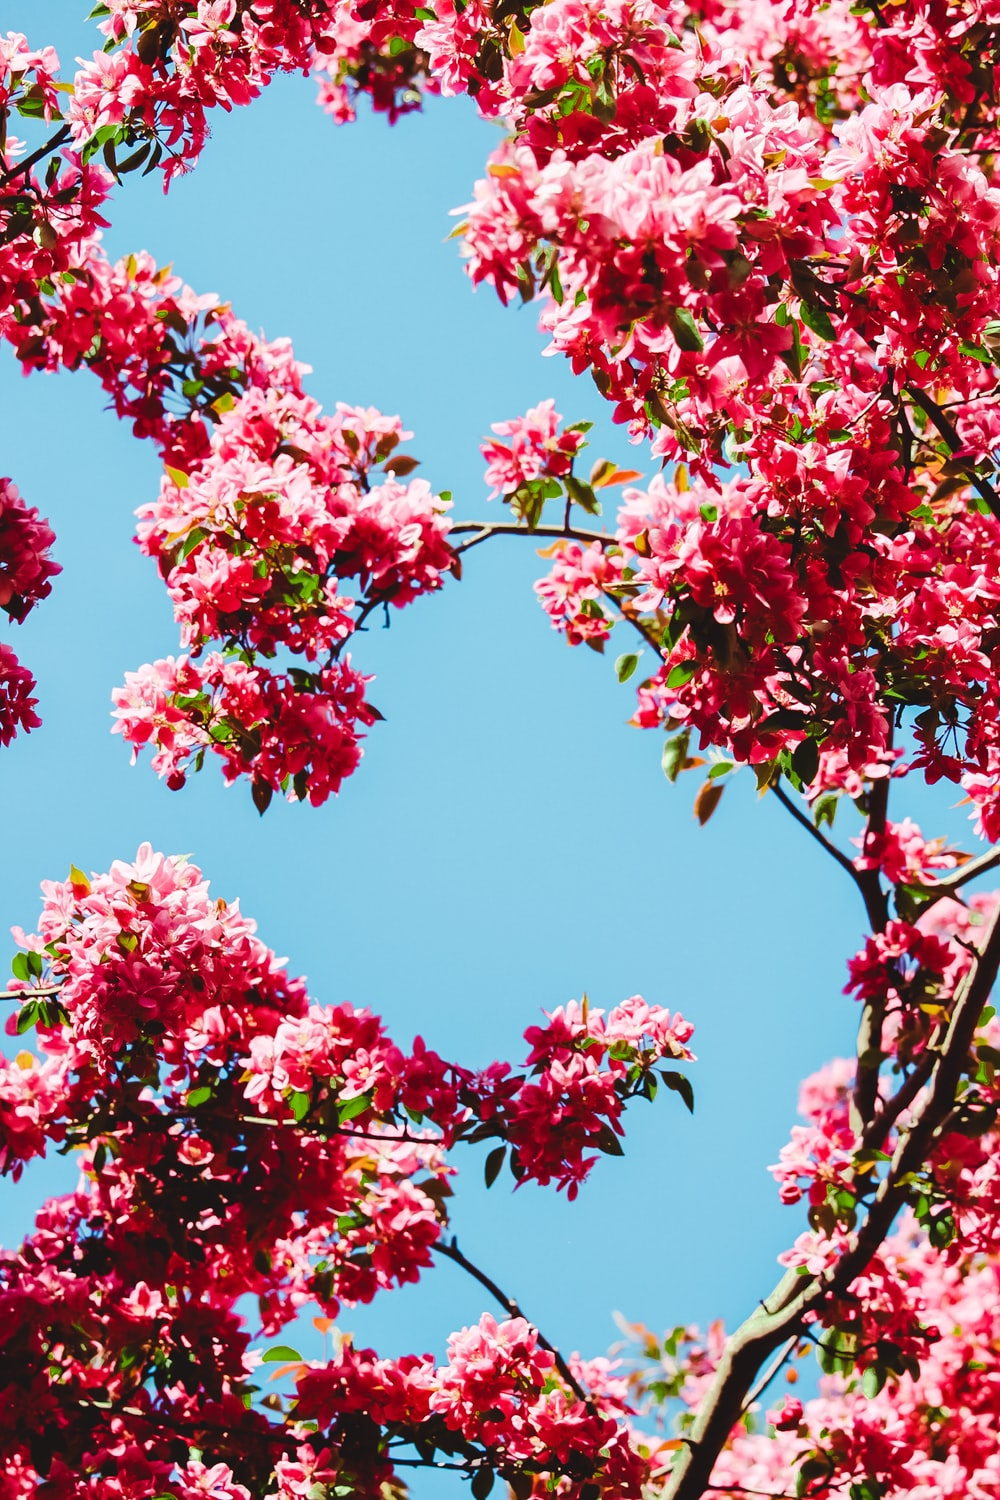 red and green leaf tree under blue sky during daytime